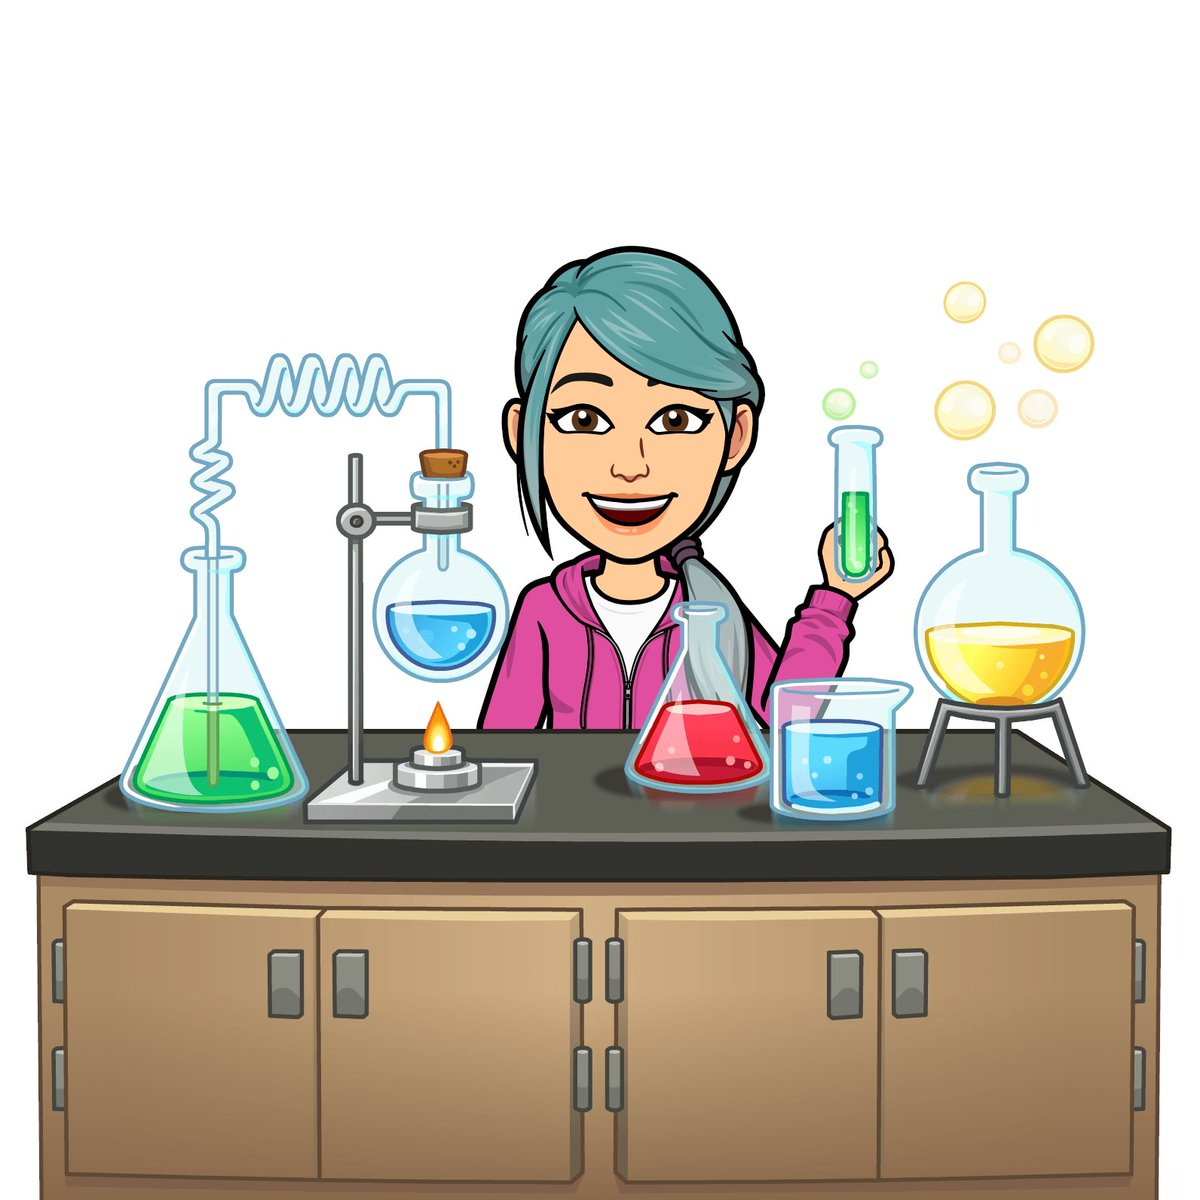 There's so much chemistry between you and Newmoji Friday 🤭 https://t.co/0SSsighYrE